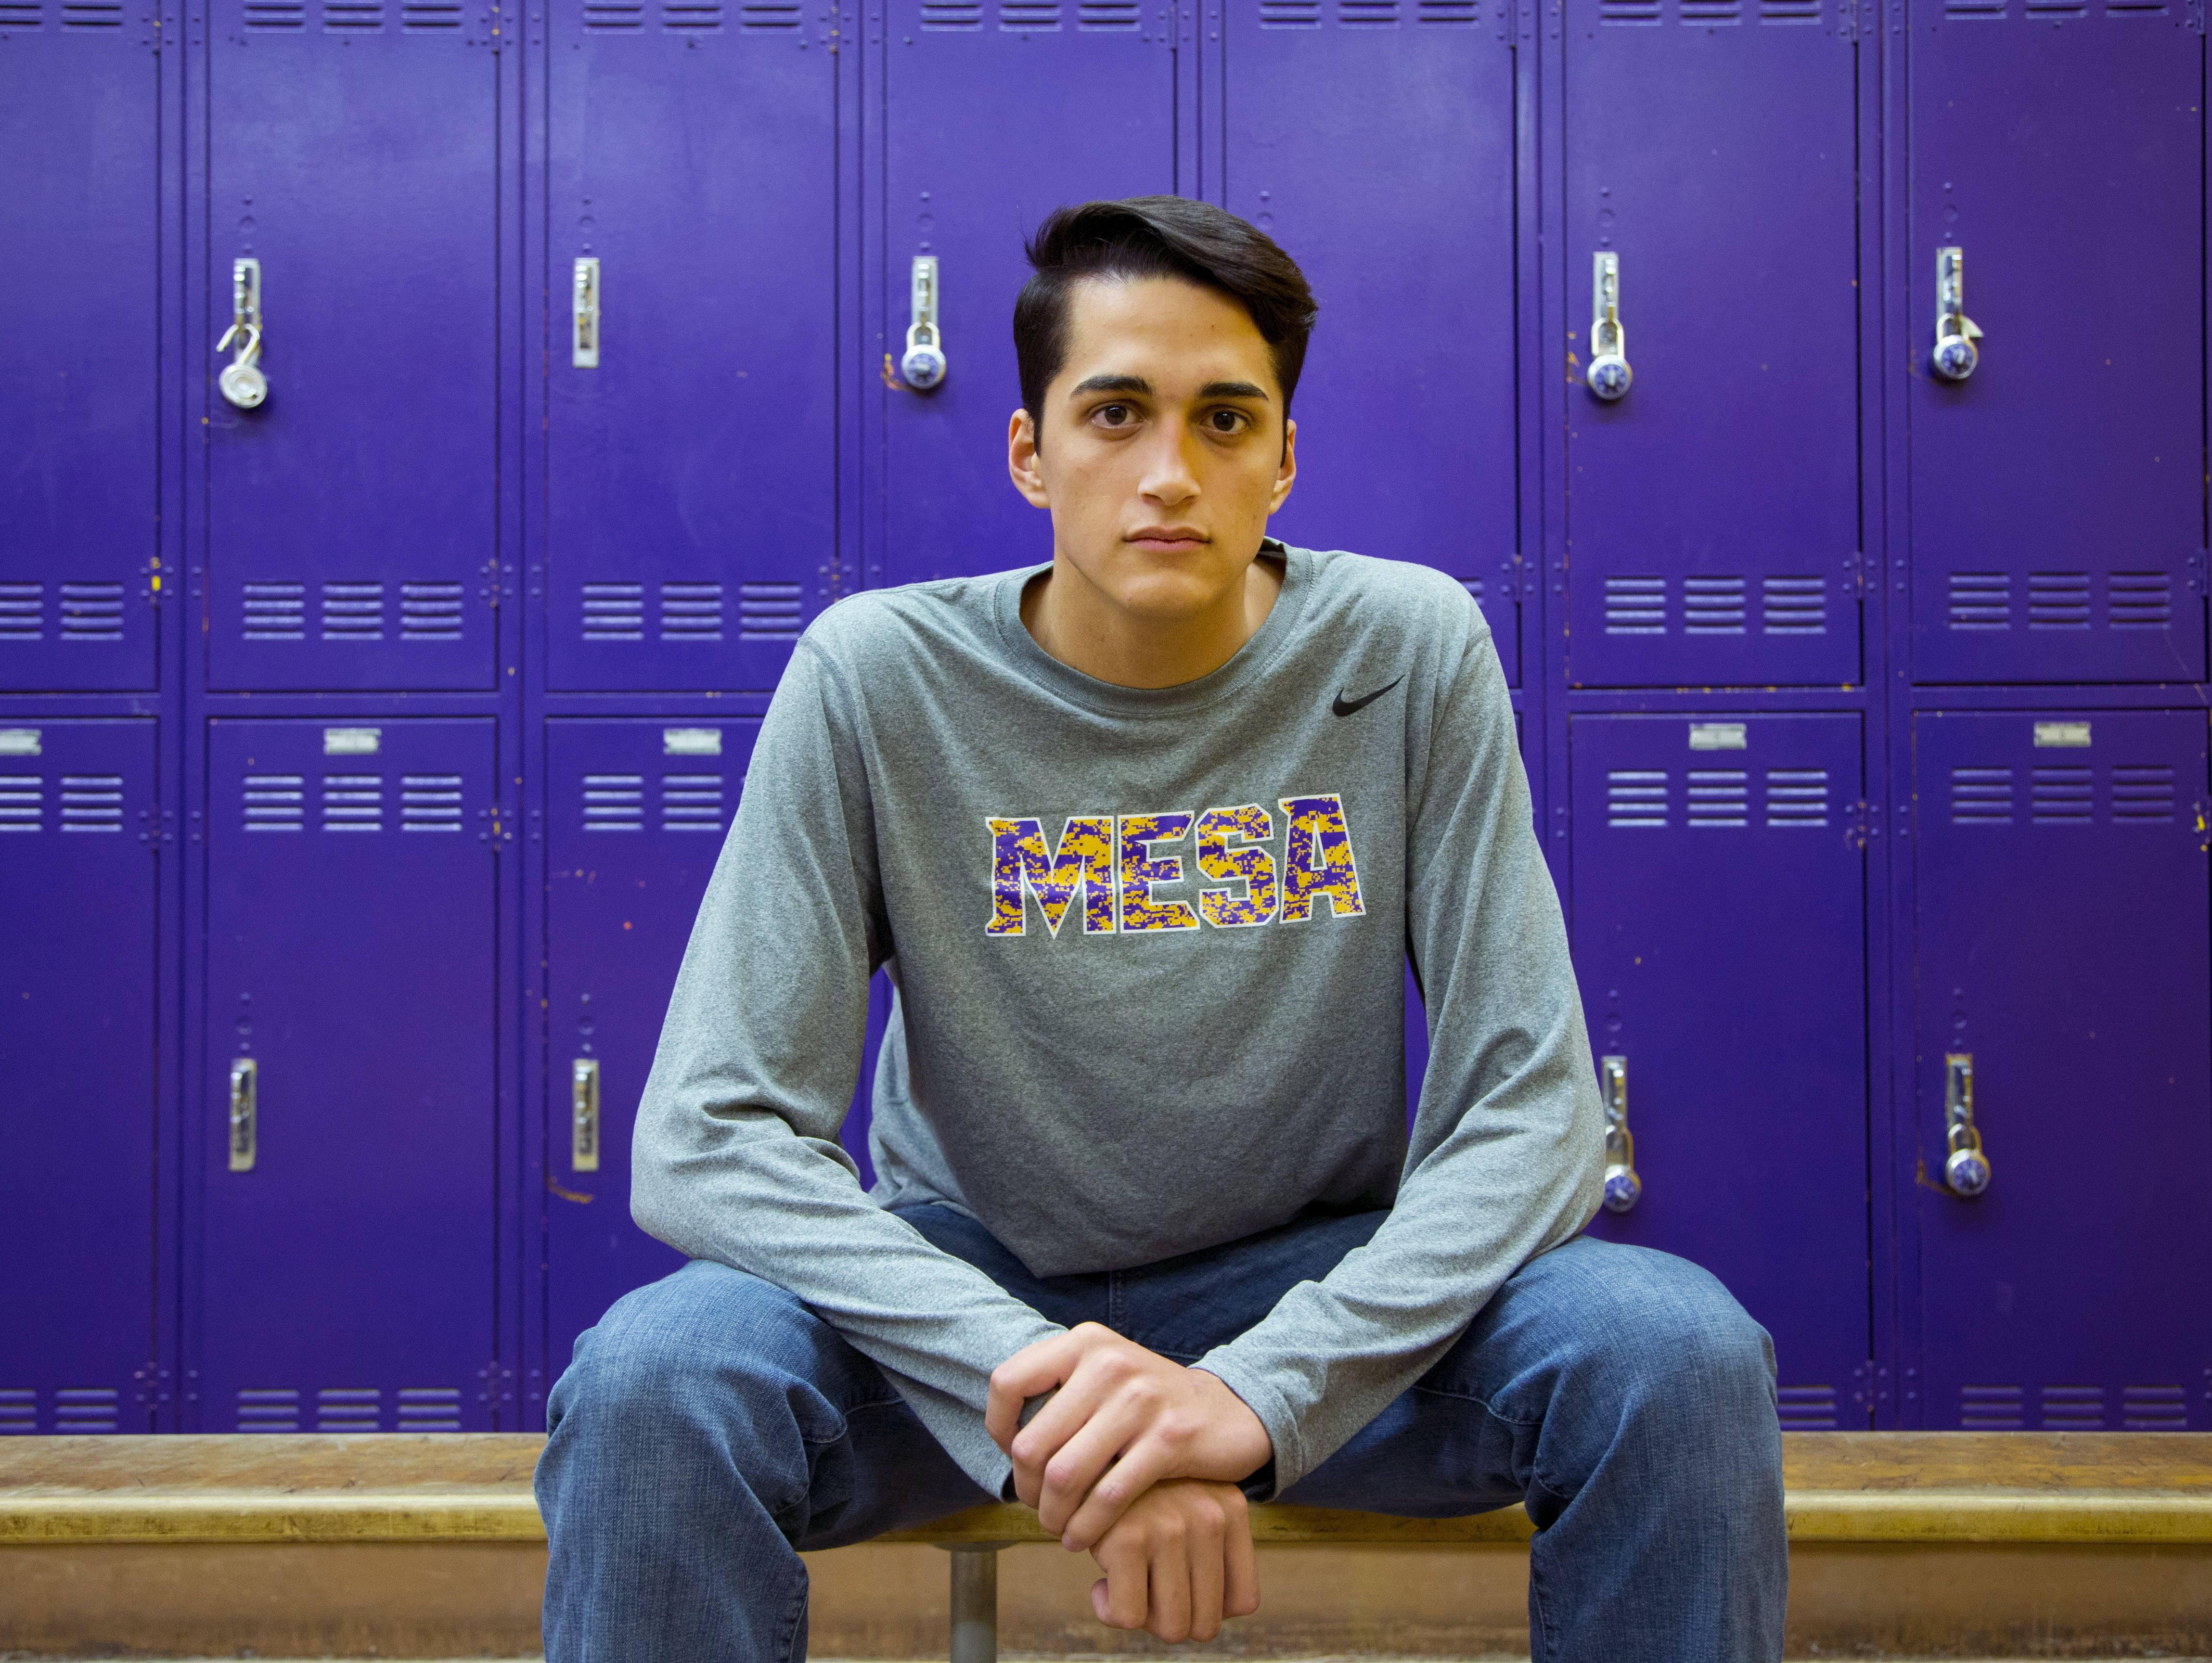 """Mesa High basketball player Antonio Barraza was subjected to """"build the wall and """"get your green card"""" chants during a high school basketball game earlier this season."""